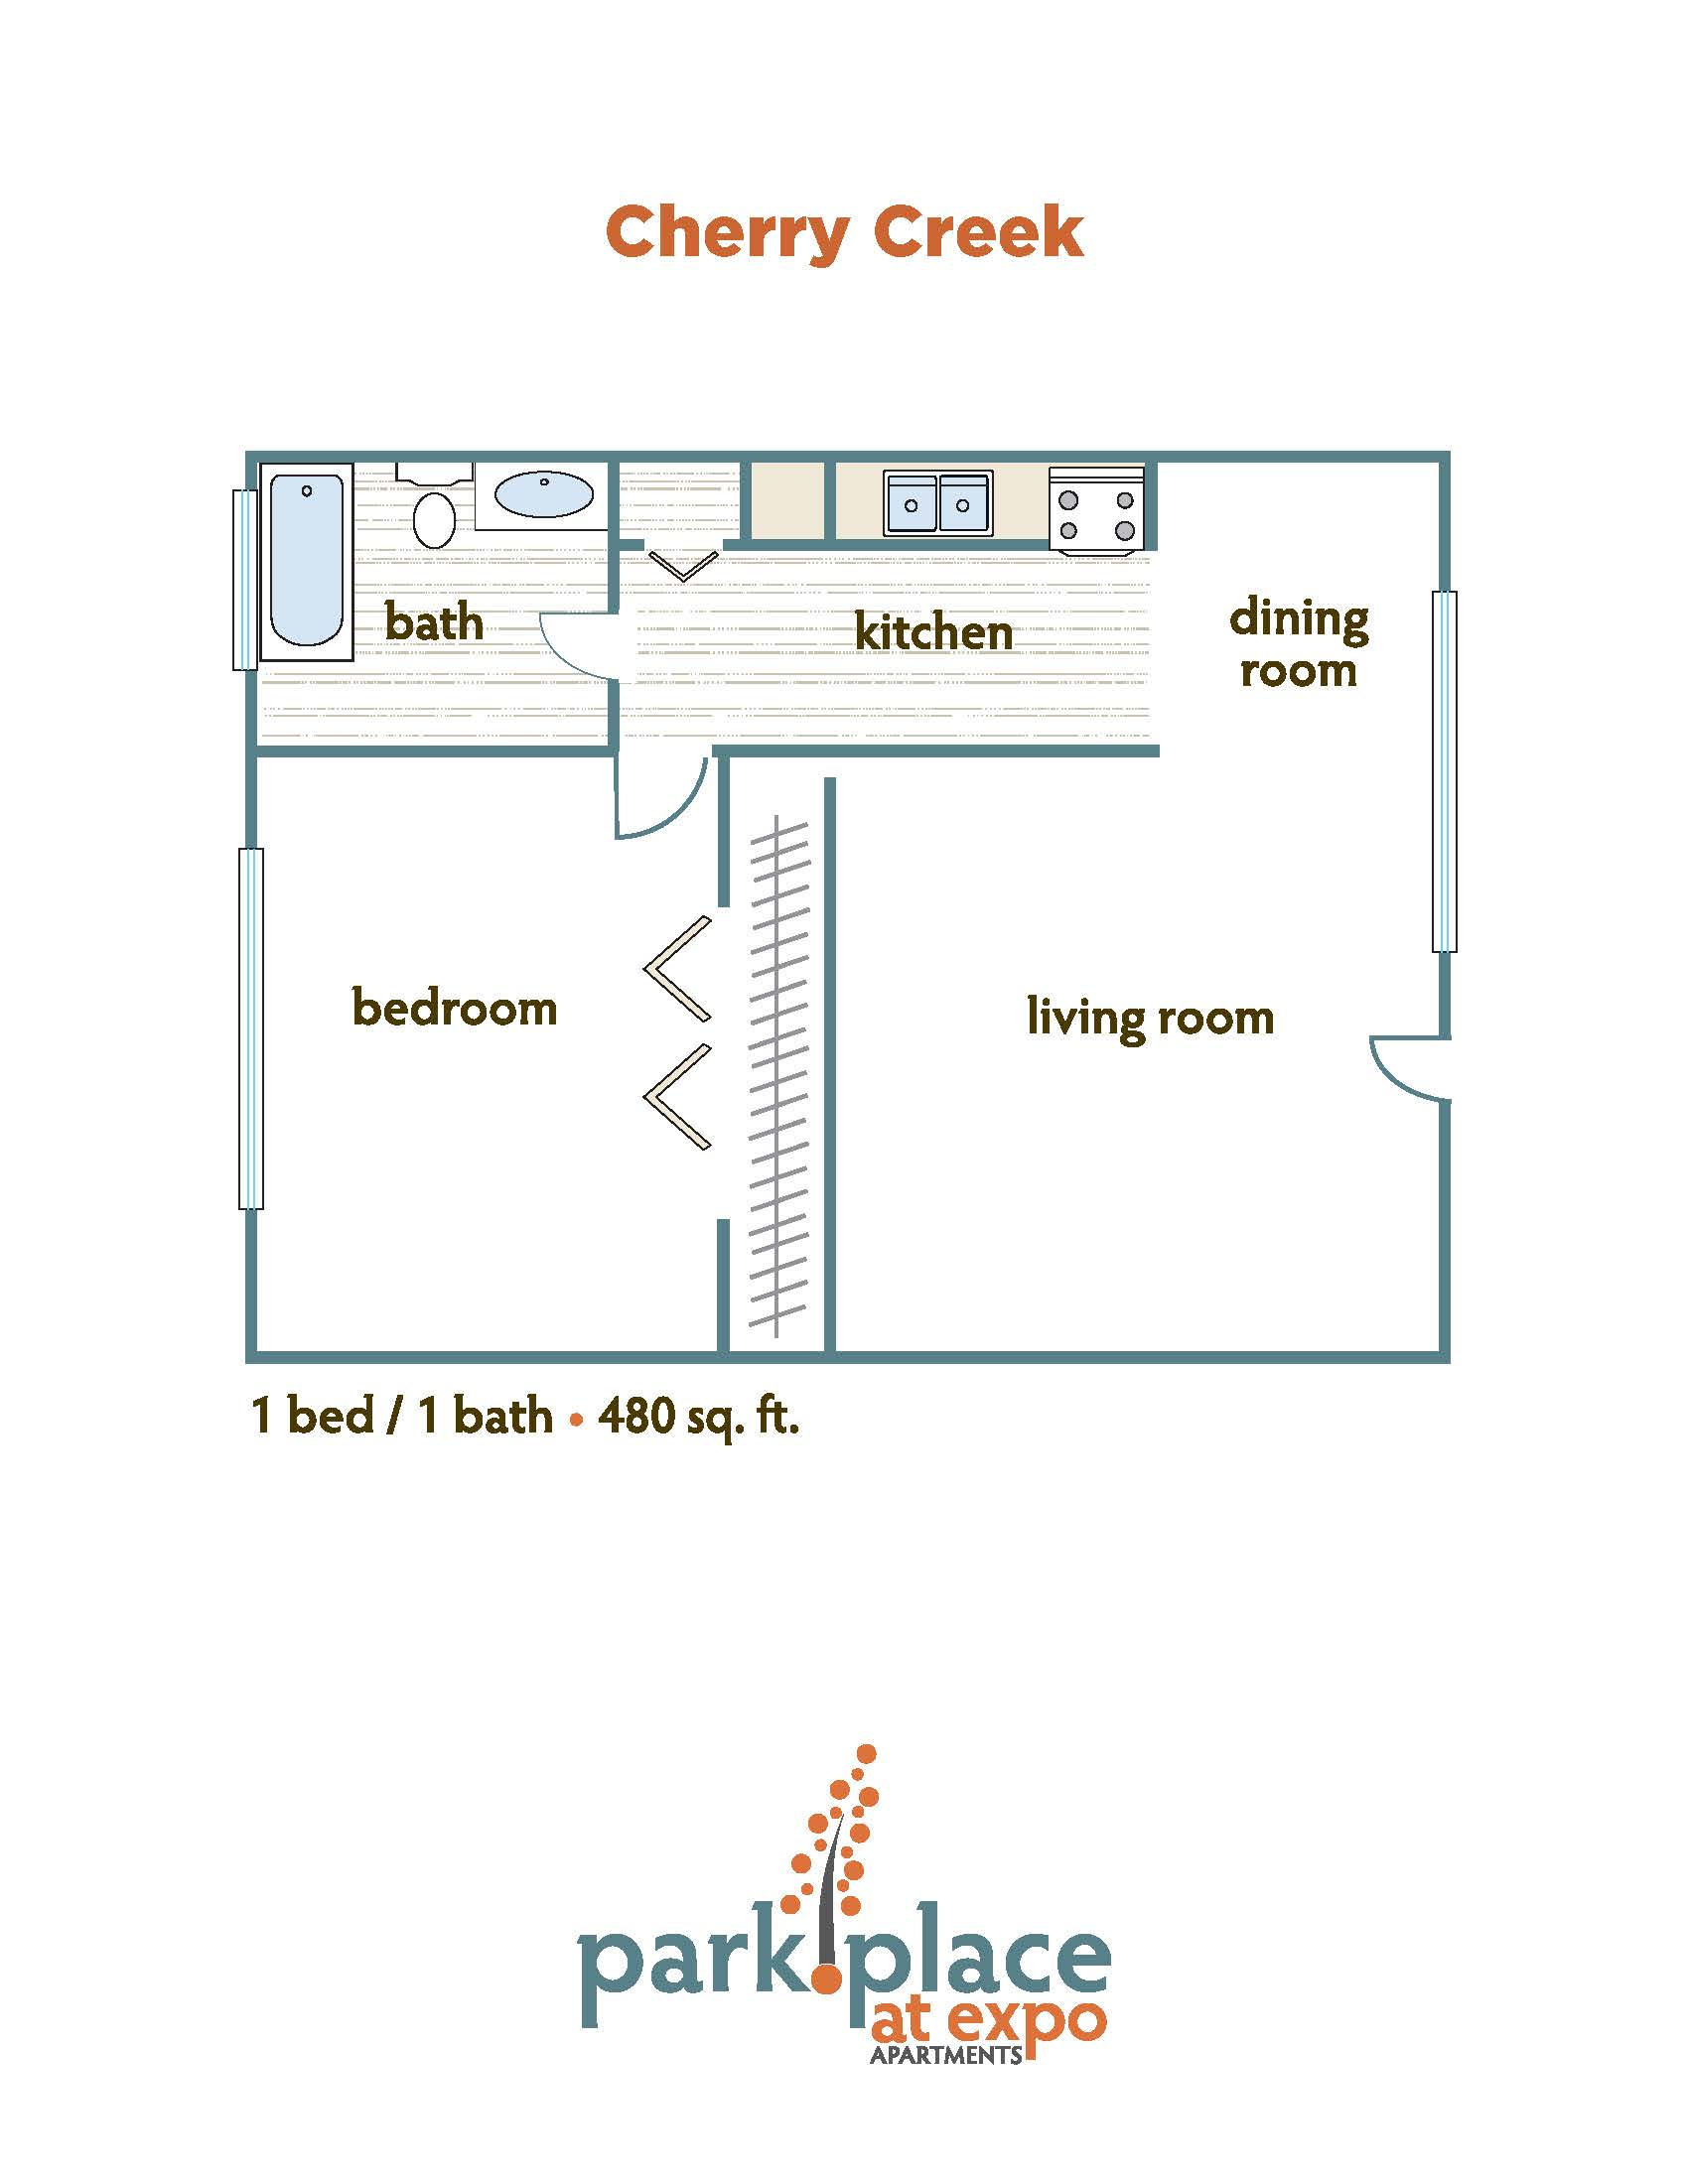 Cherry Creek floorplan